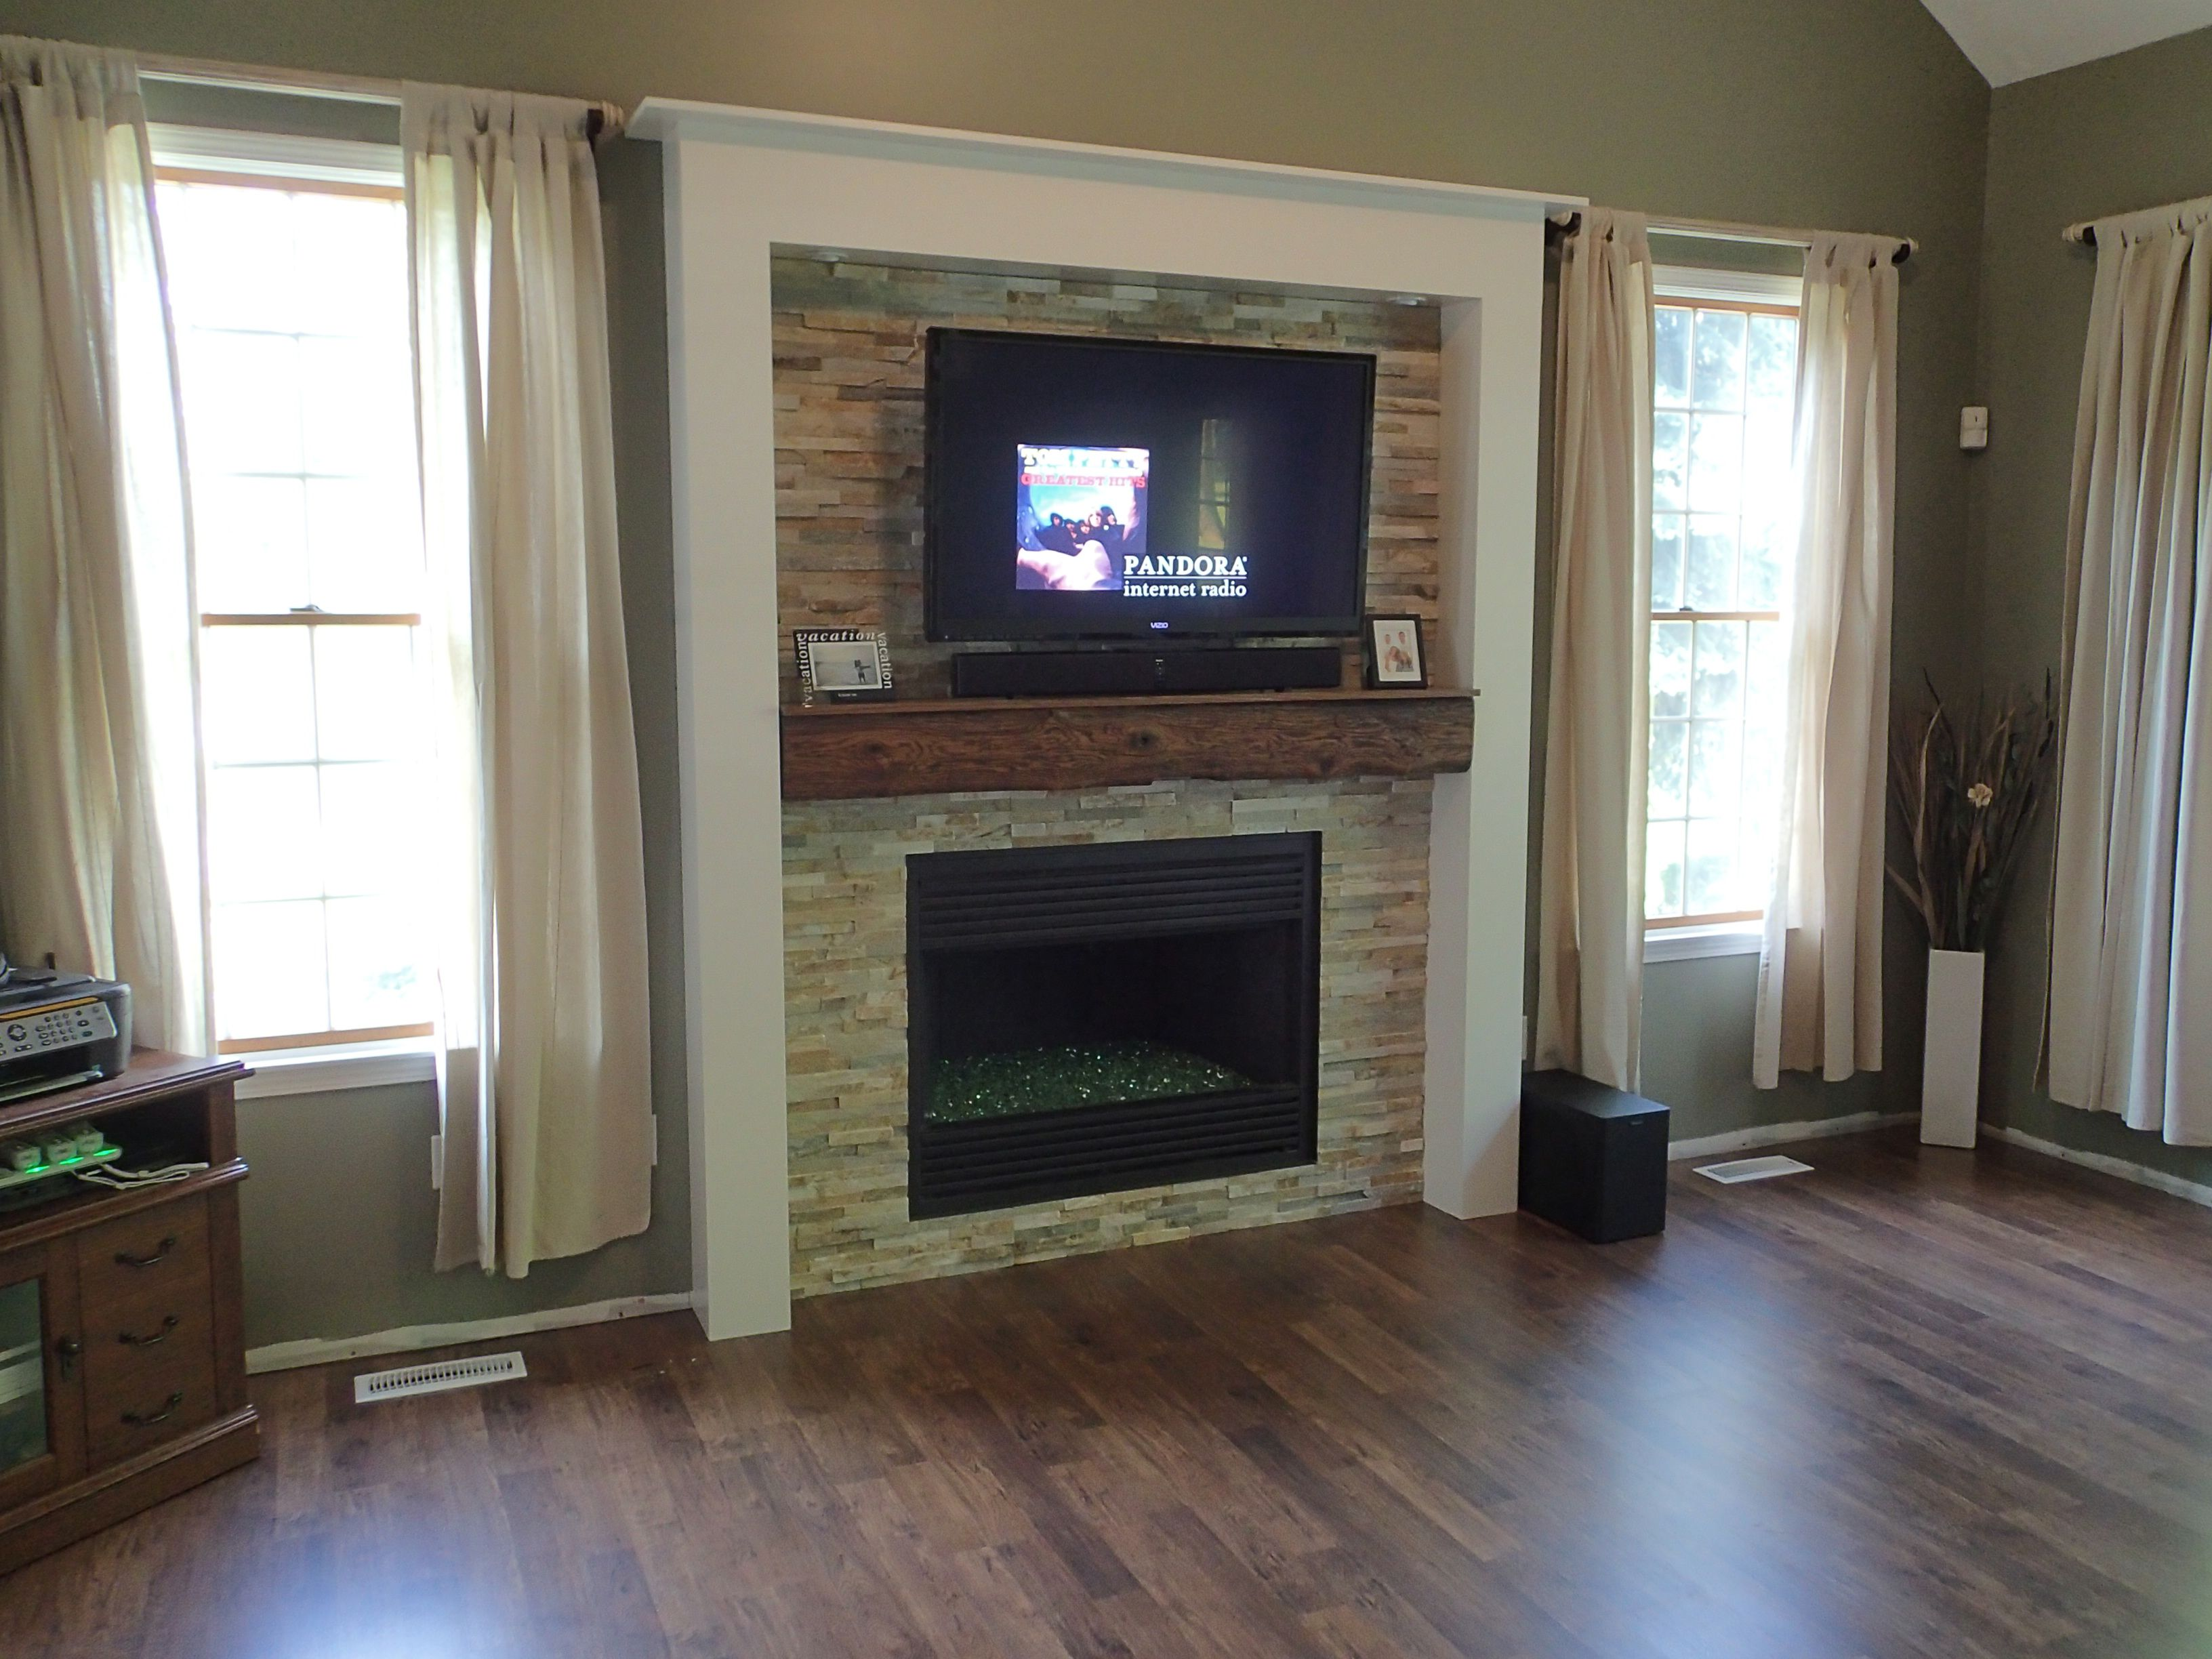 Our new fireplace real stone beams old barn beam mantel t glass